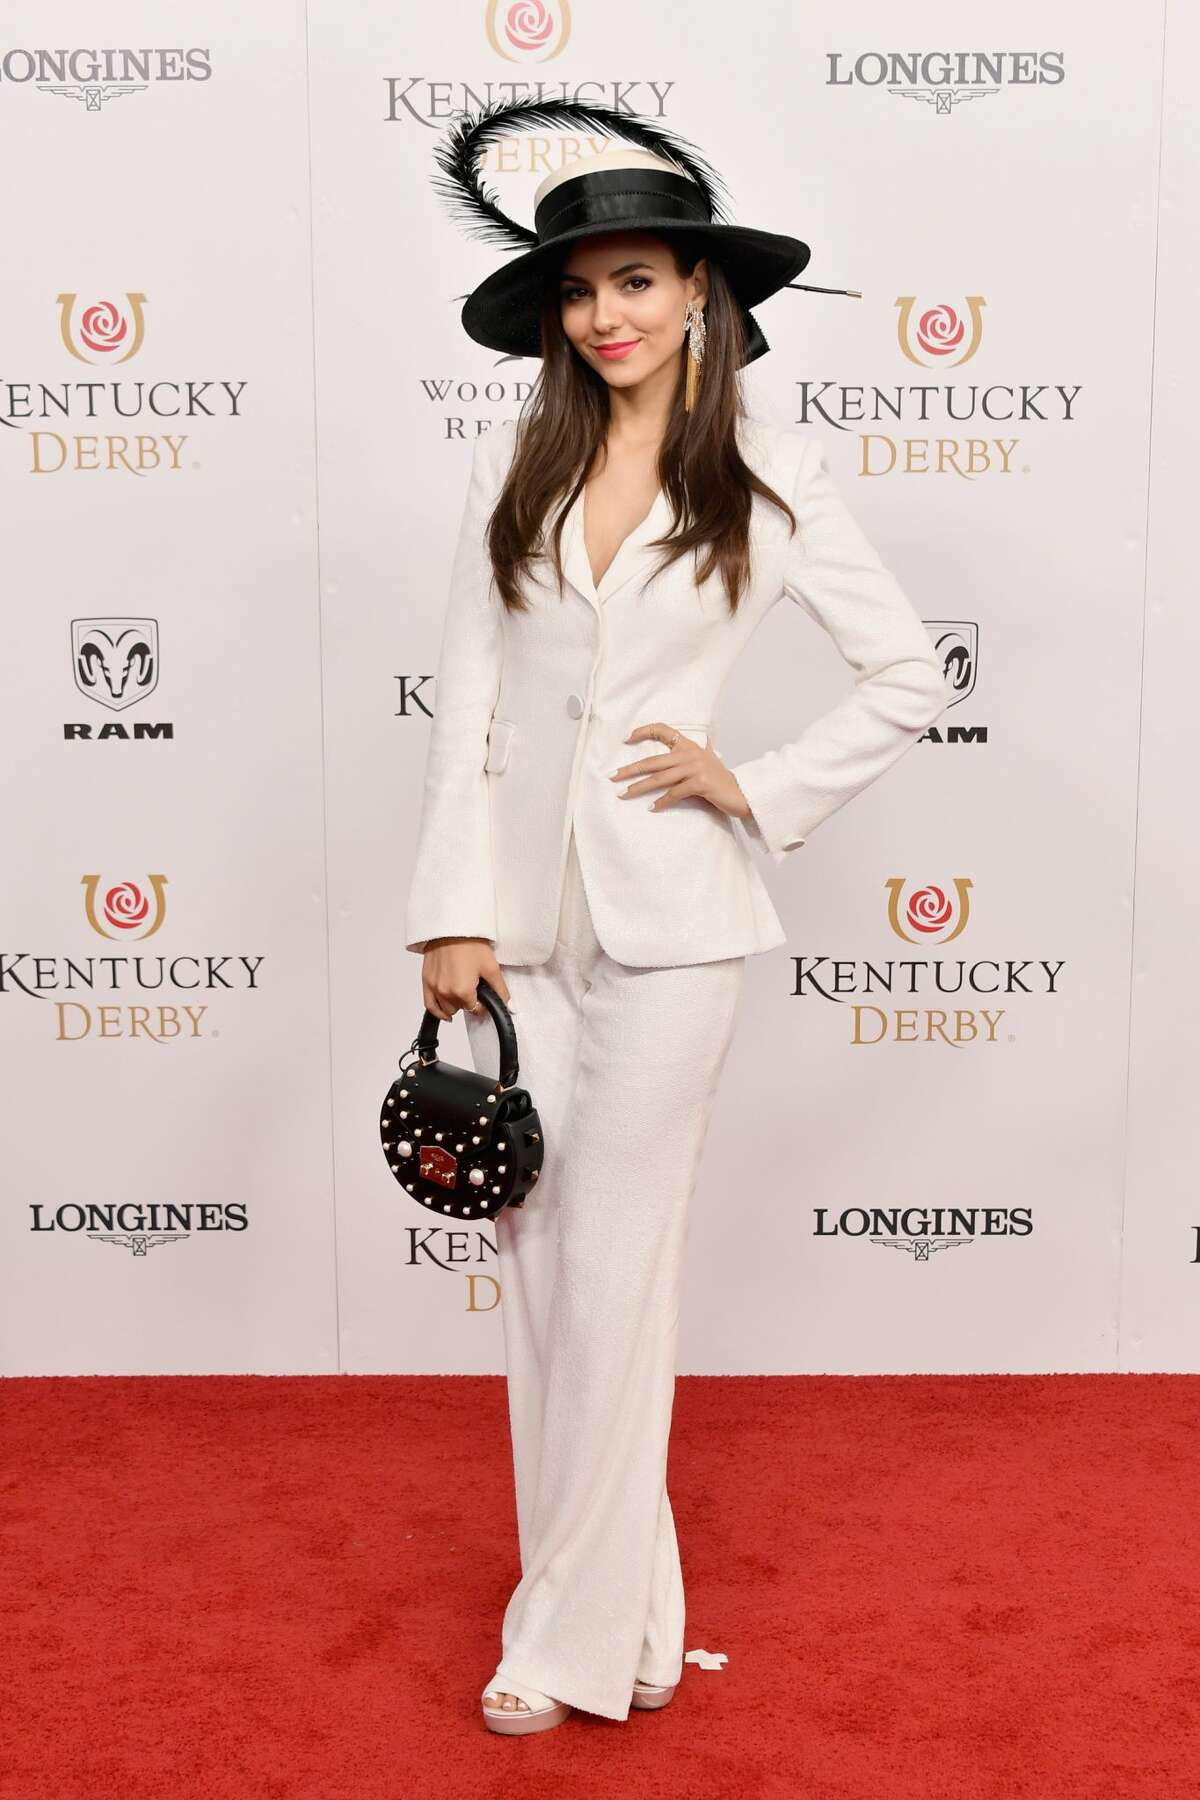 Actress Victoria Justice attends Kentucky Derby 144 on May 5, 2018 in Louisville, Kentucky.